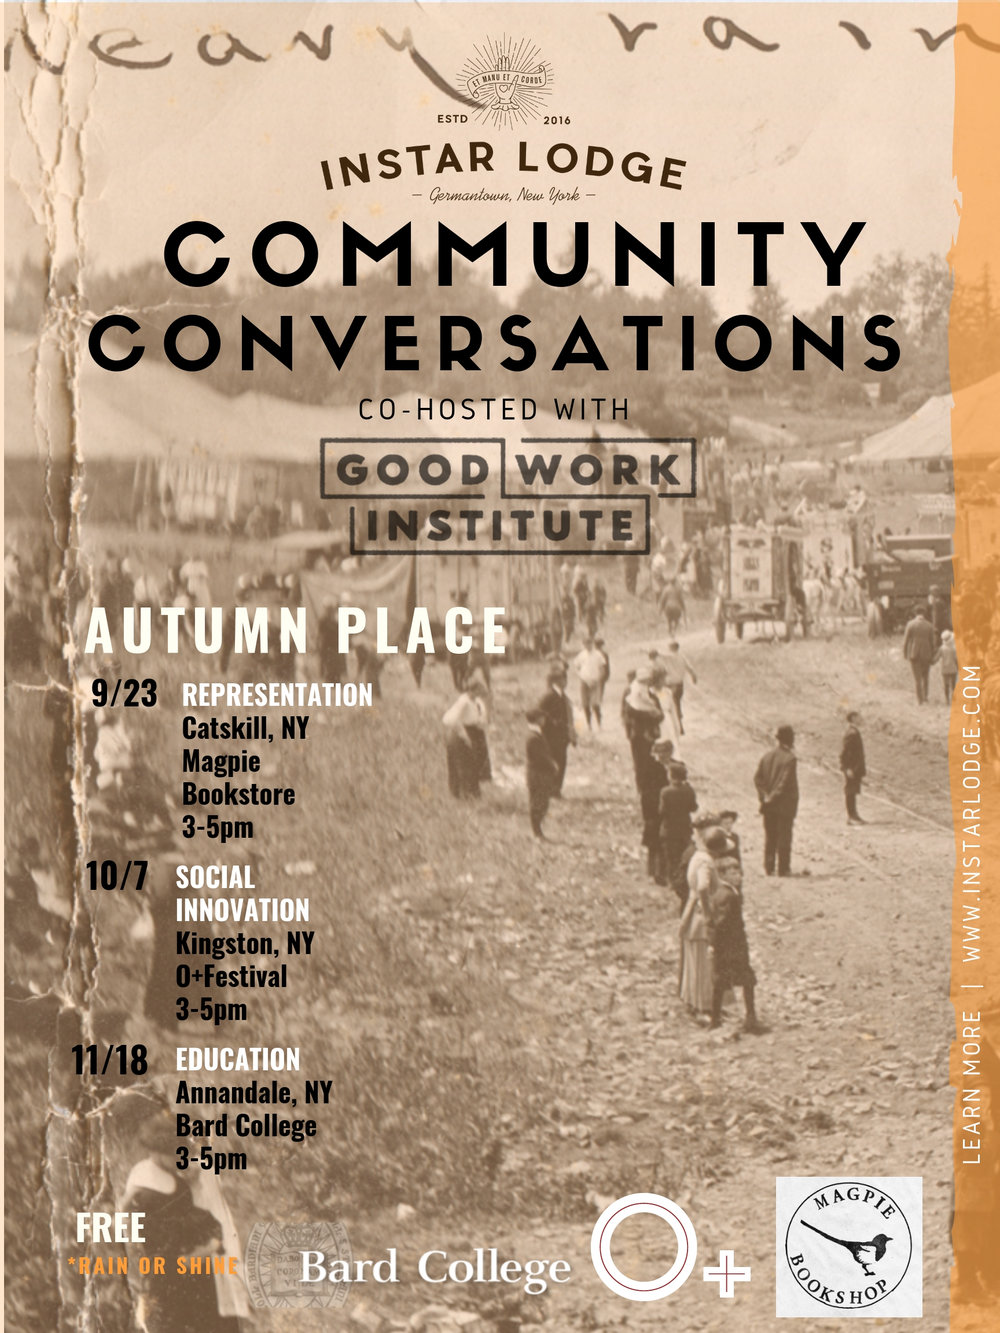 FINAL DRAFT Autumn Place Community Conversation Poster(4).jpg